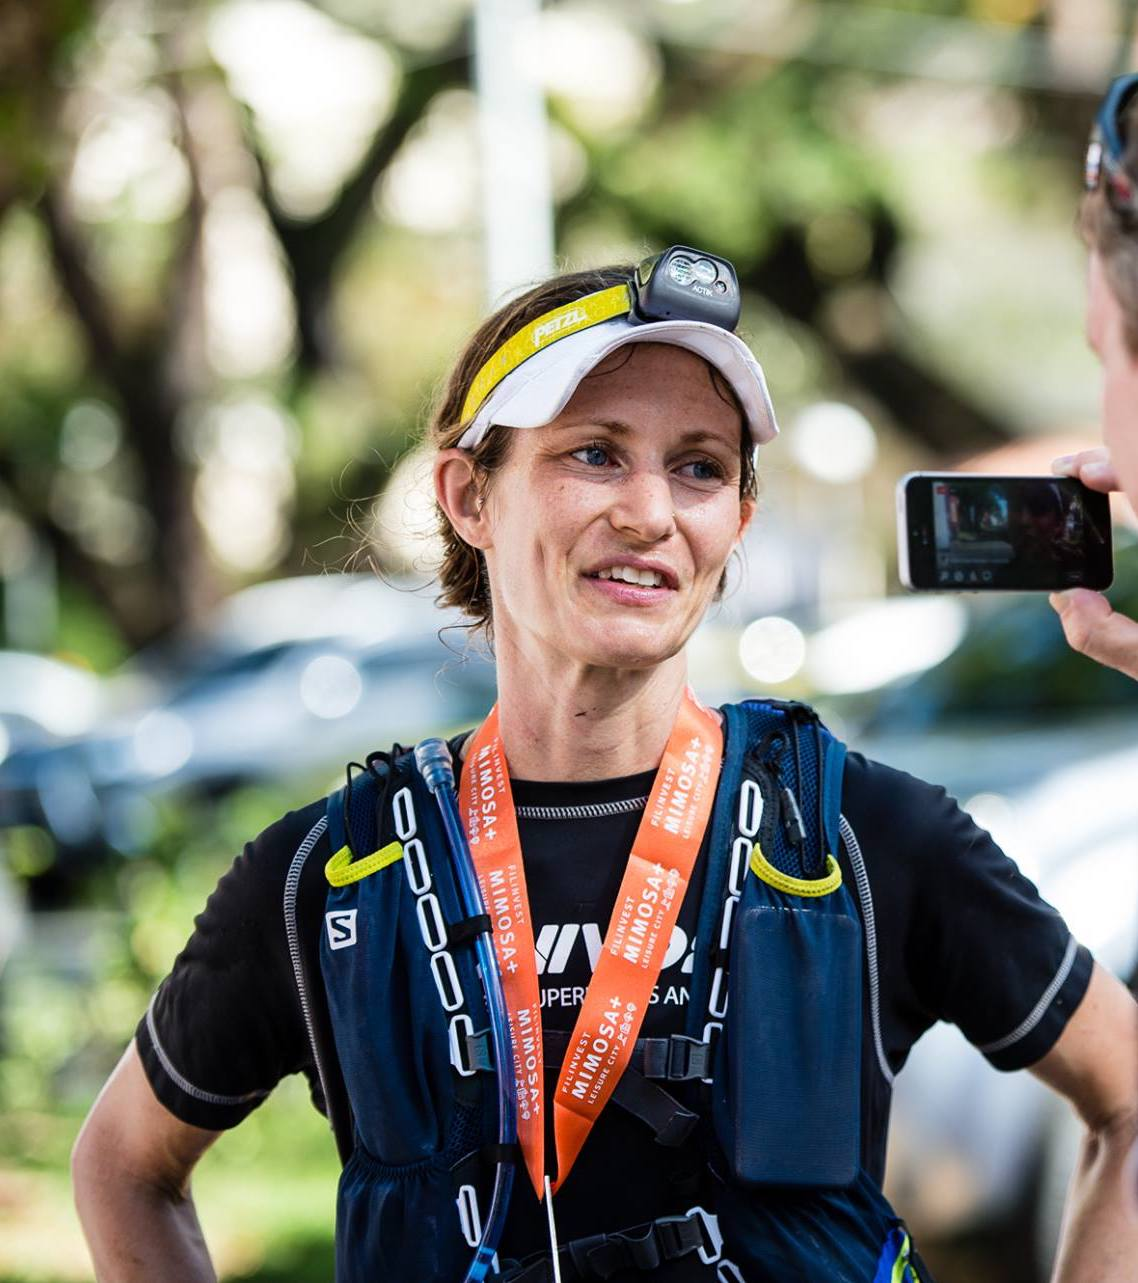 Kim Matthews: the new Asia Trail Master champion!